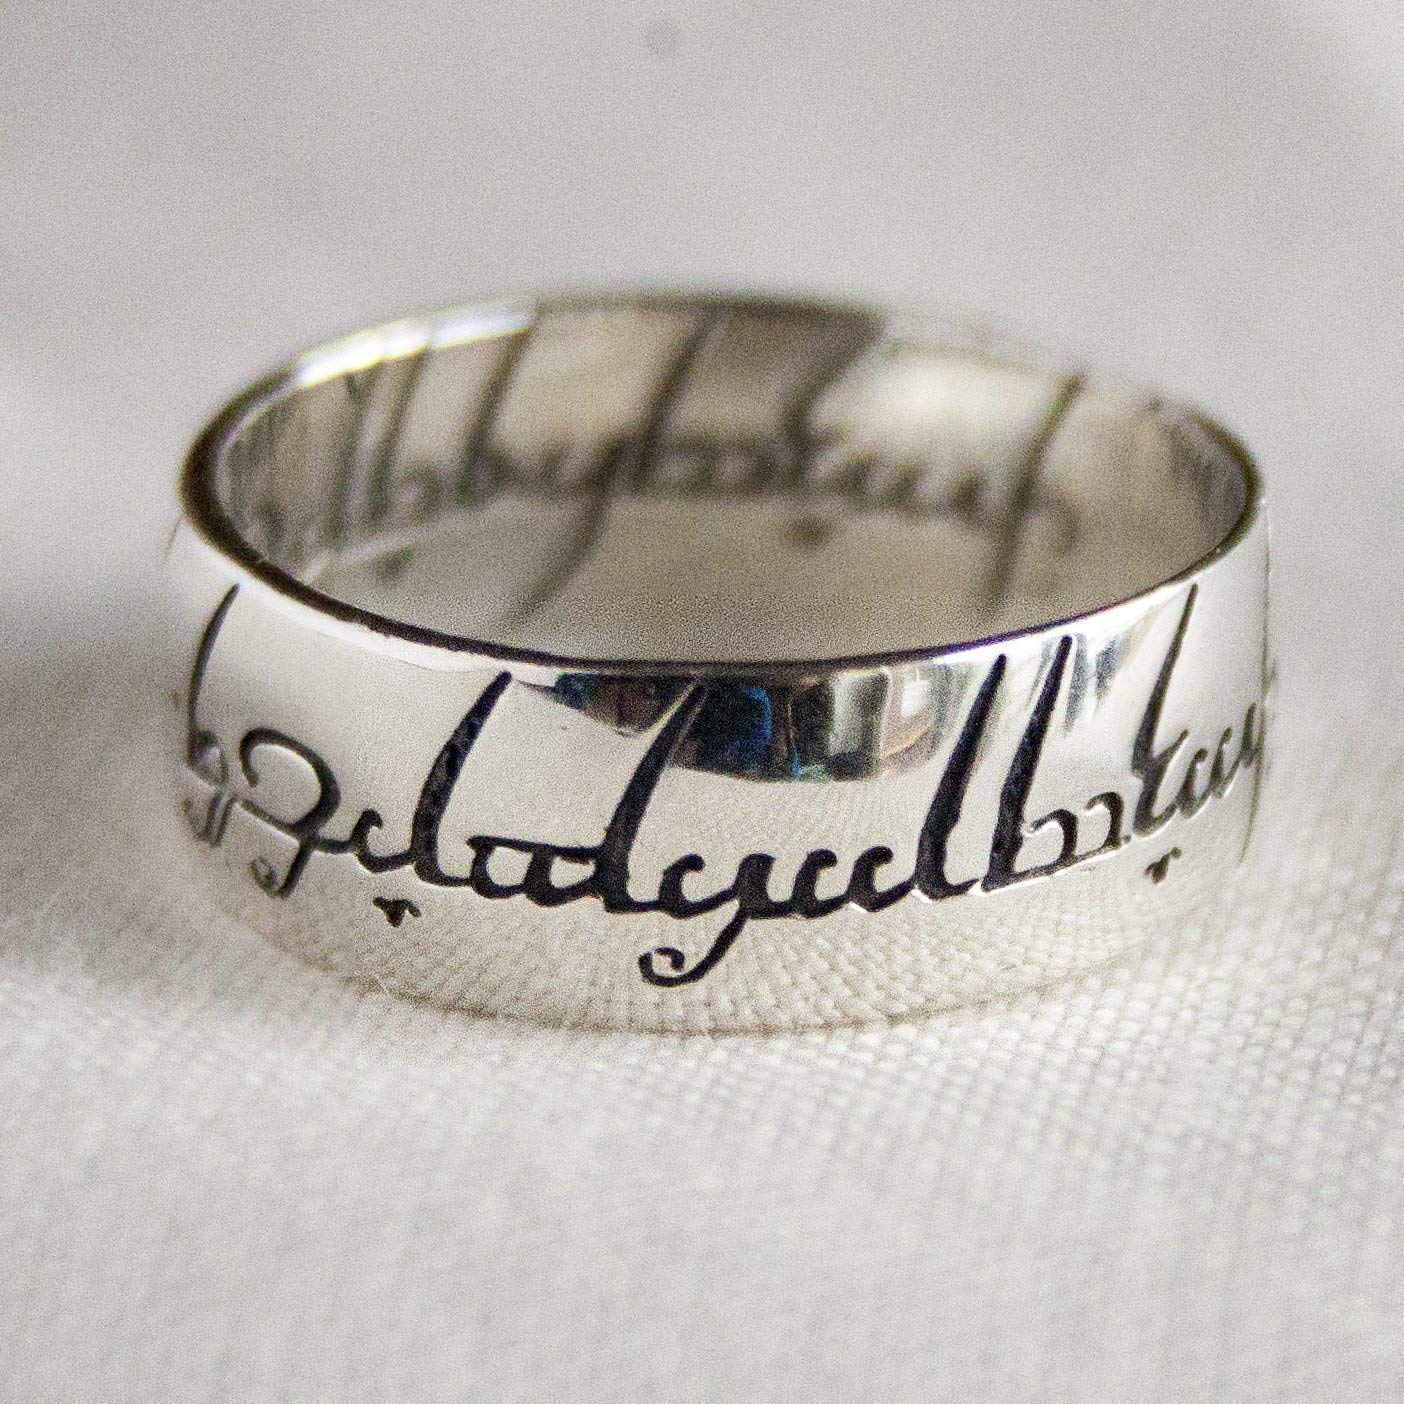 The One Ring Sterling Silver To Rule Them All Elvish Cosplay Ring Lord of the Rings Wiccan Jewelry